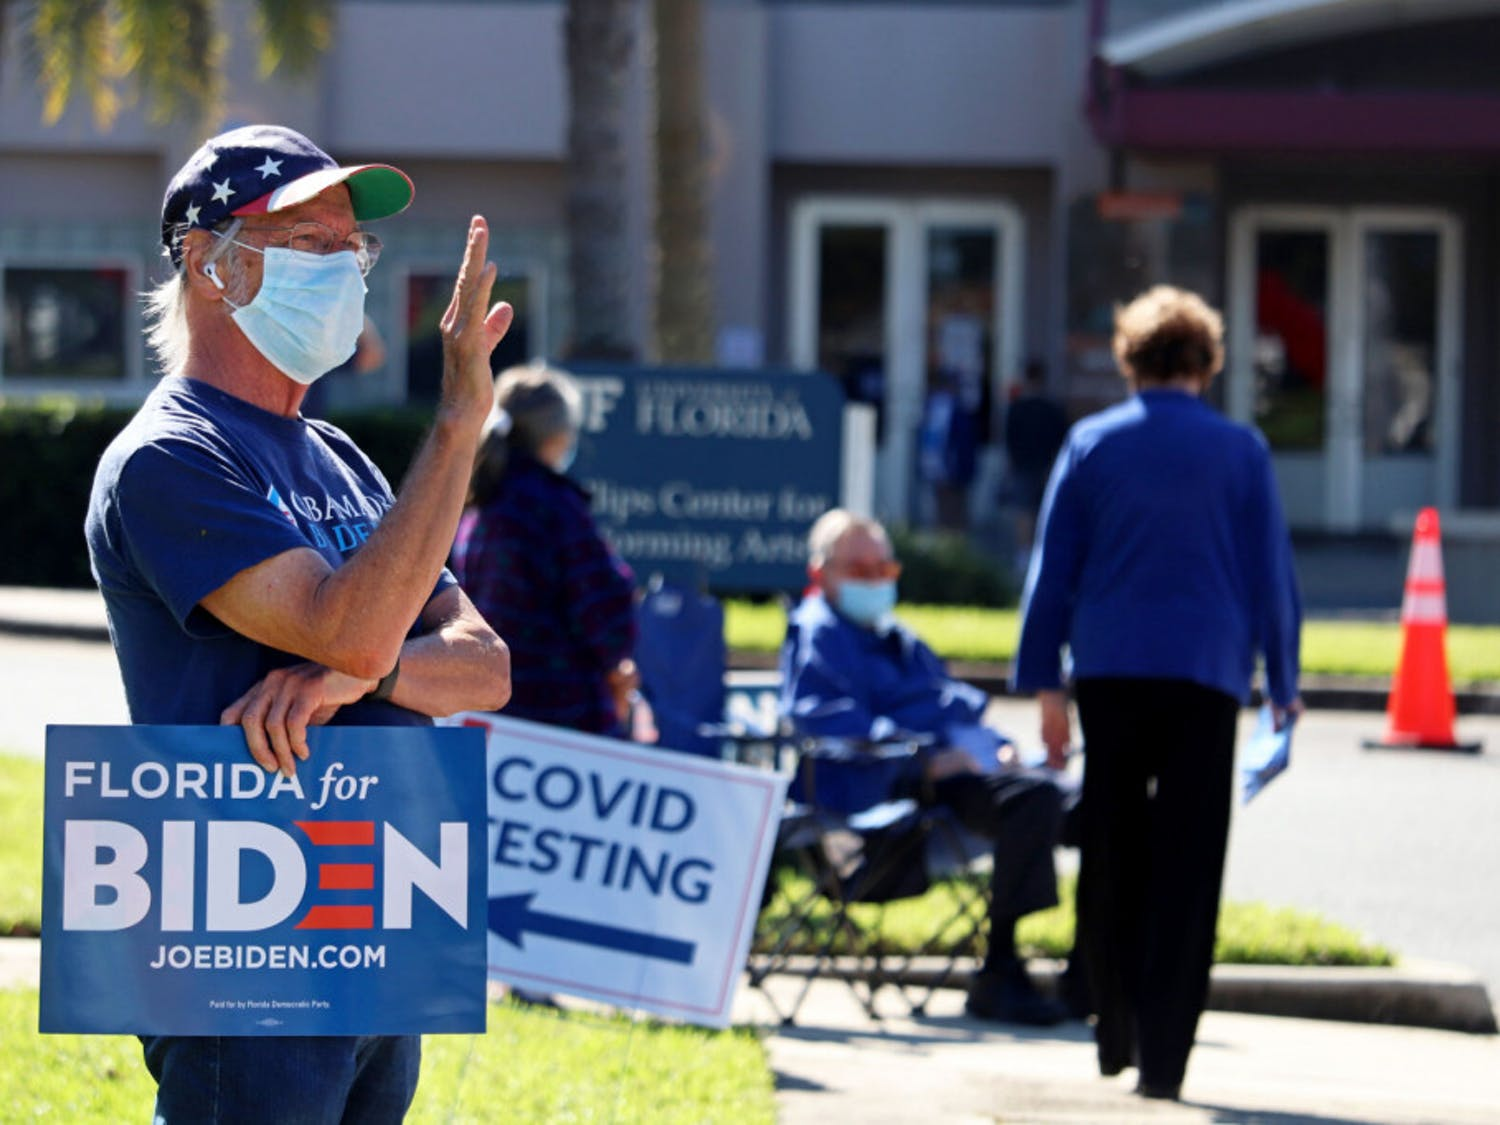 The Phillips Center for the Performing Arts had Election Day voting and drive-thru COVID testing on Tuesday, Nov. 3, 2020 in Gainesville, Fla.